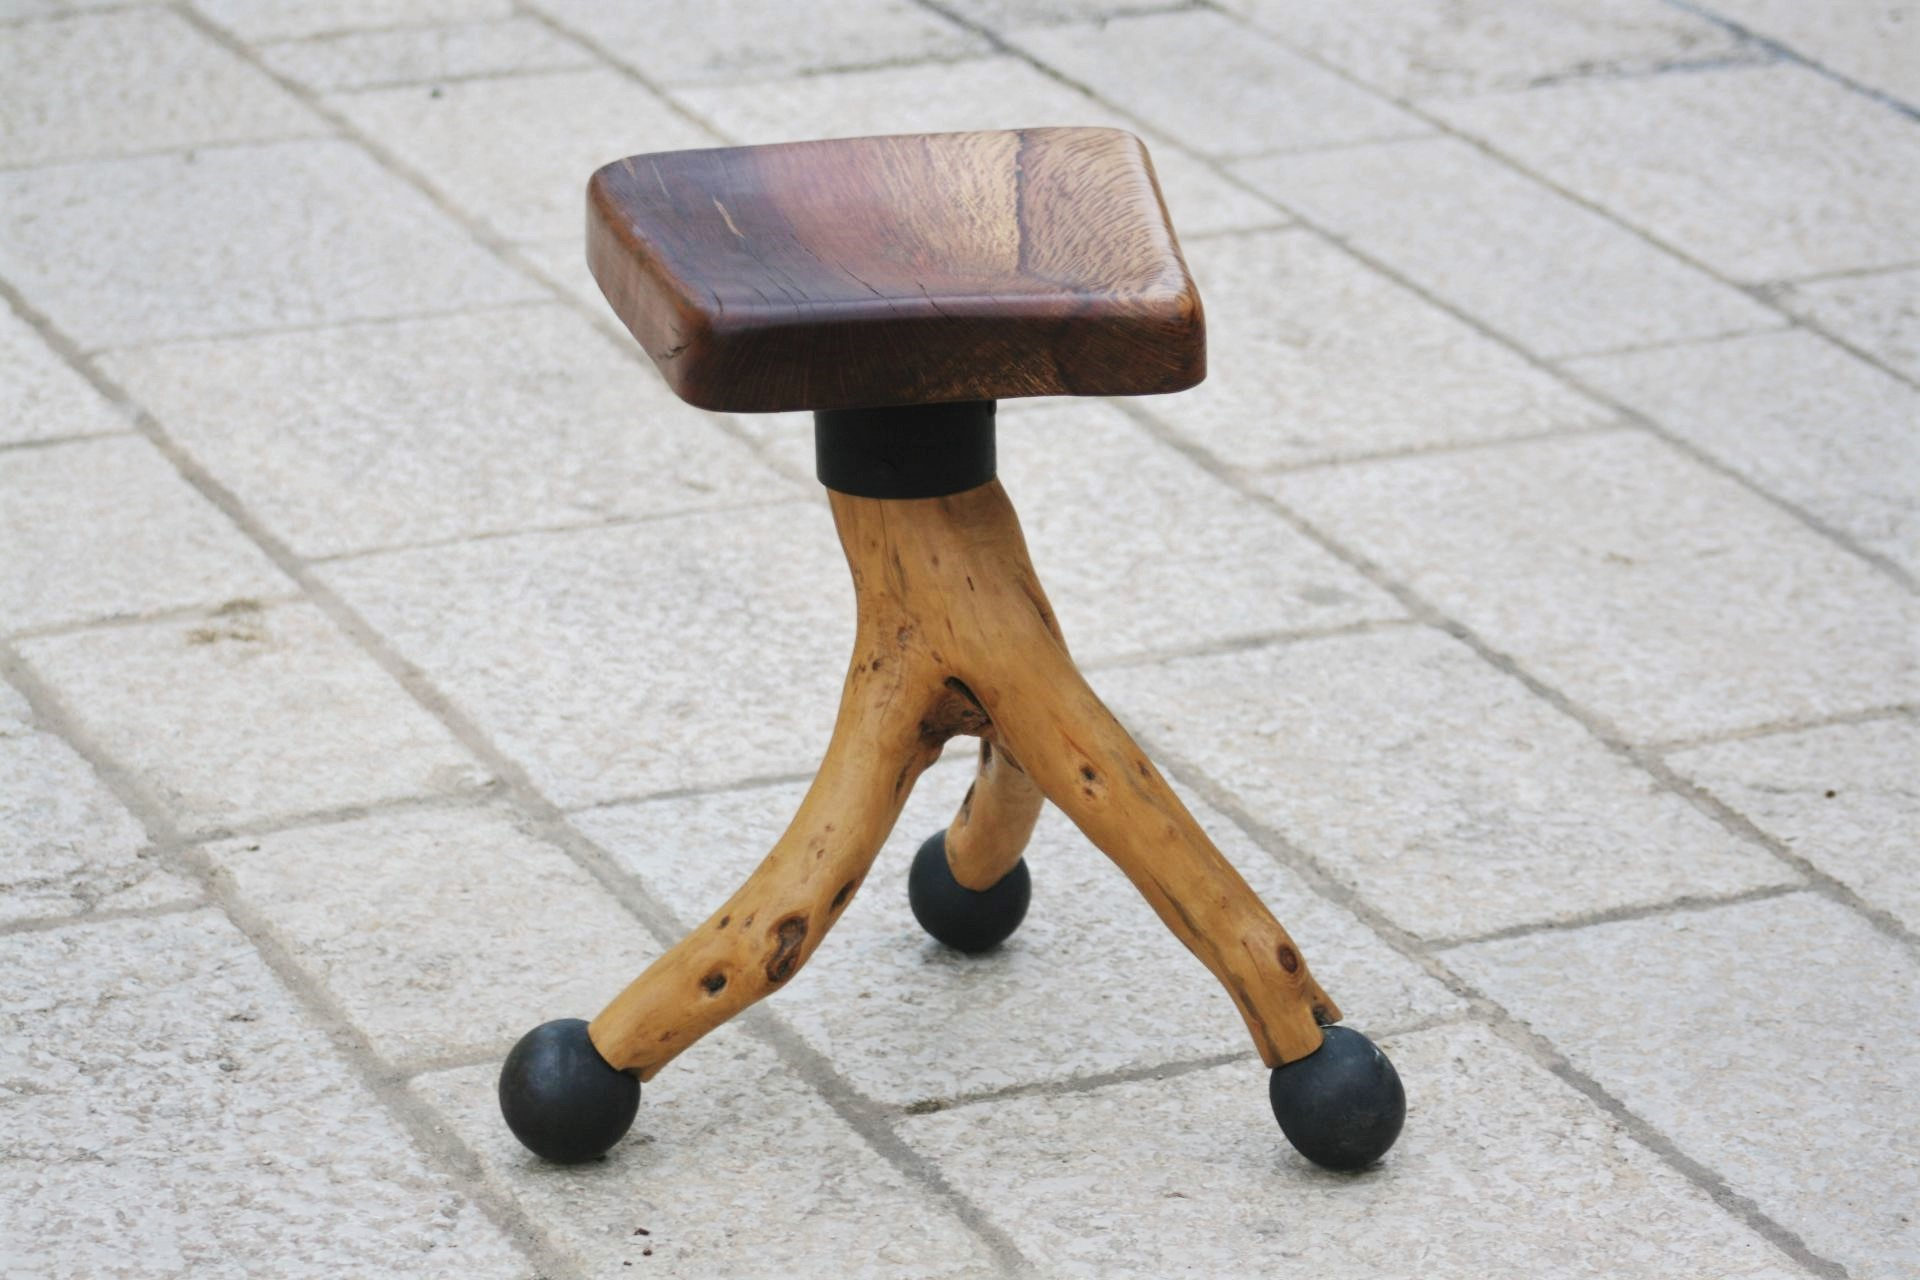 wood interior design art olive wood stool Mediterranean holm oak wood chair handmade unique artist design years old olive wood